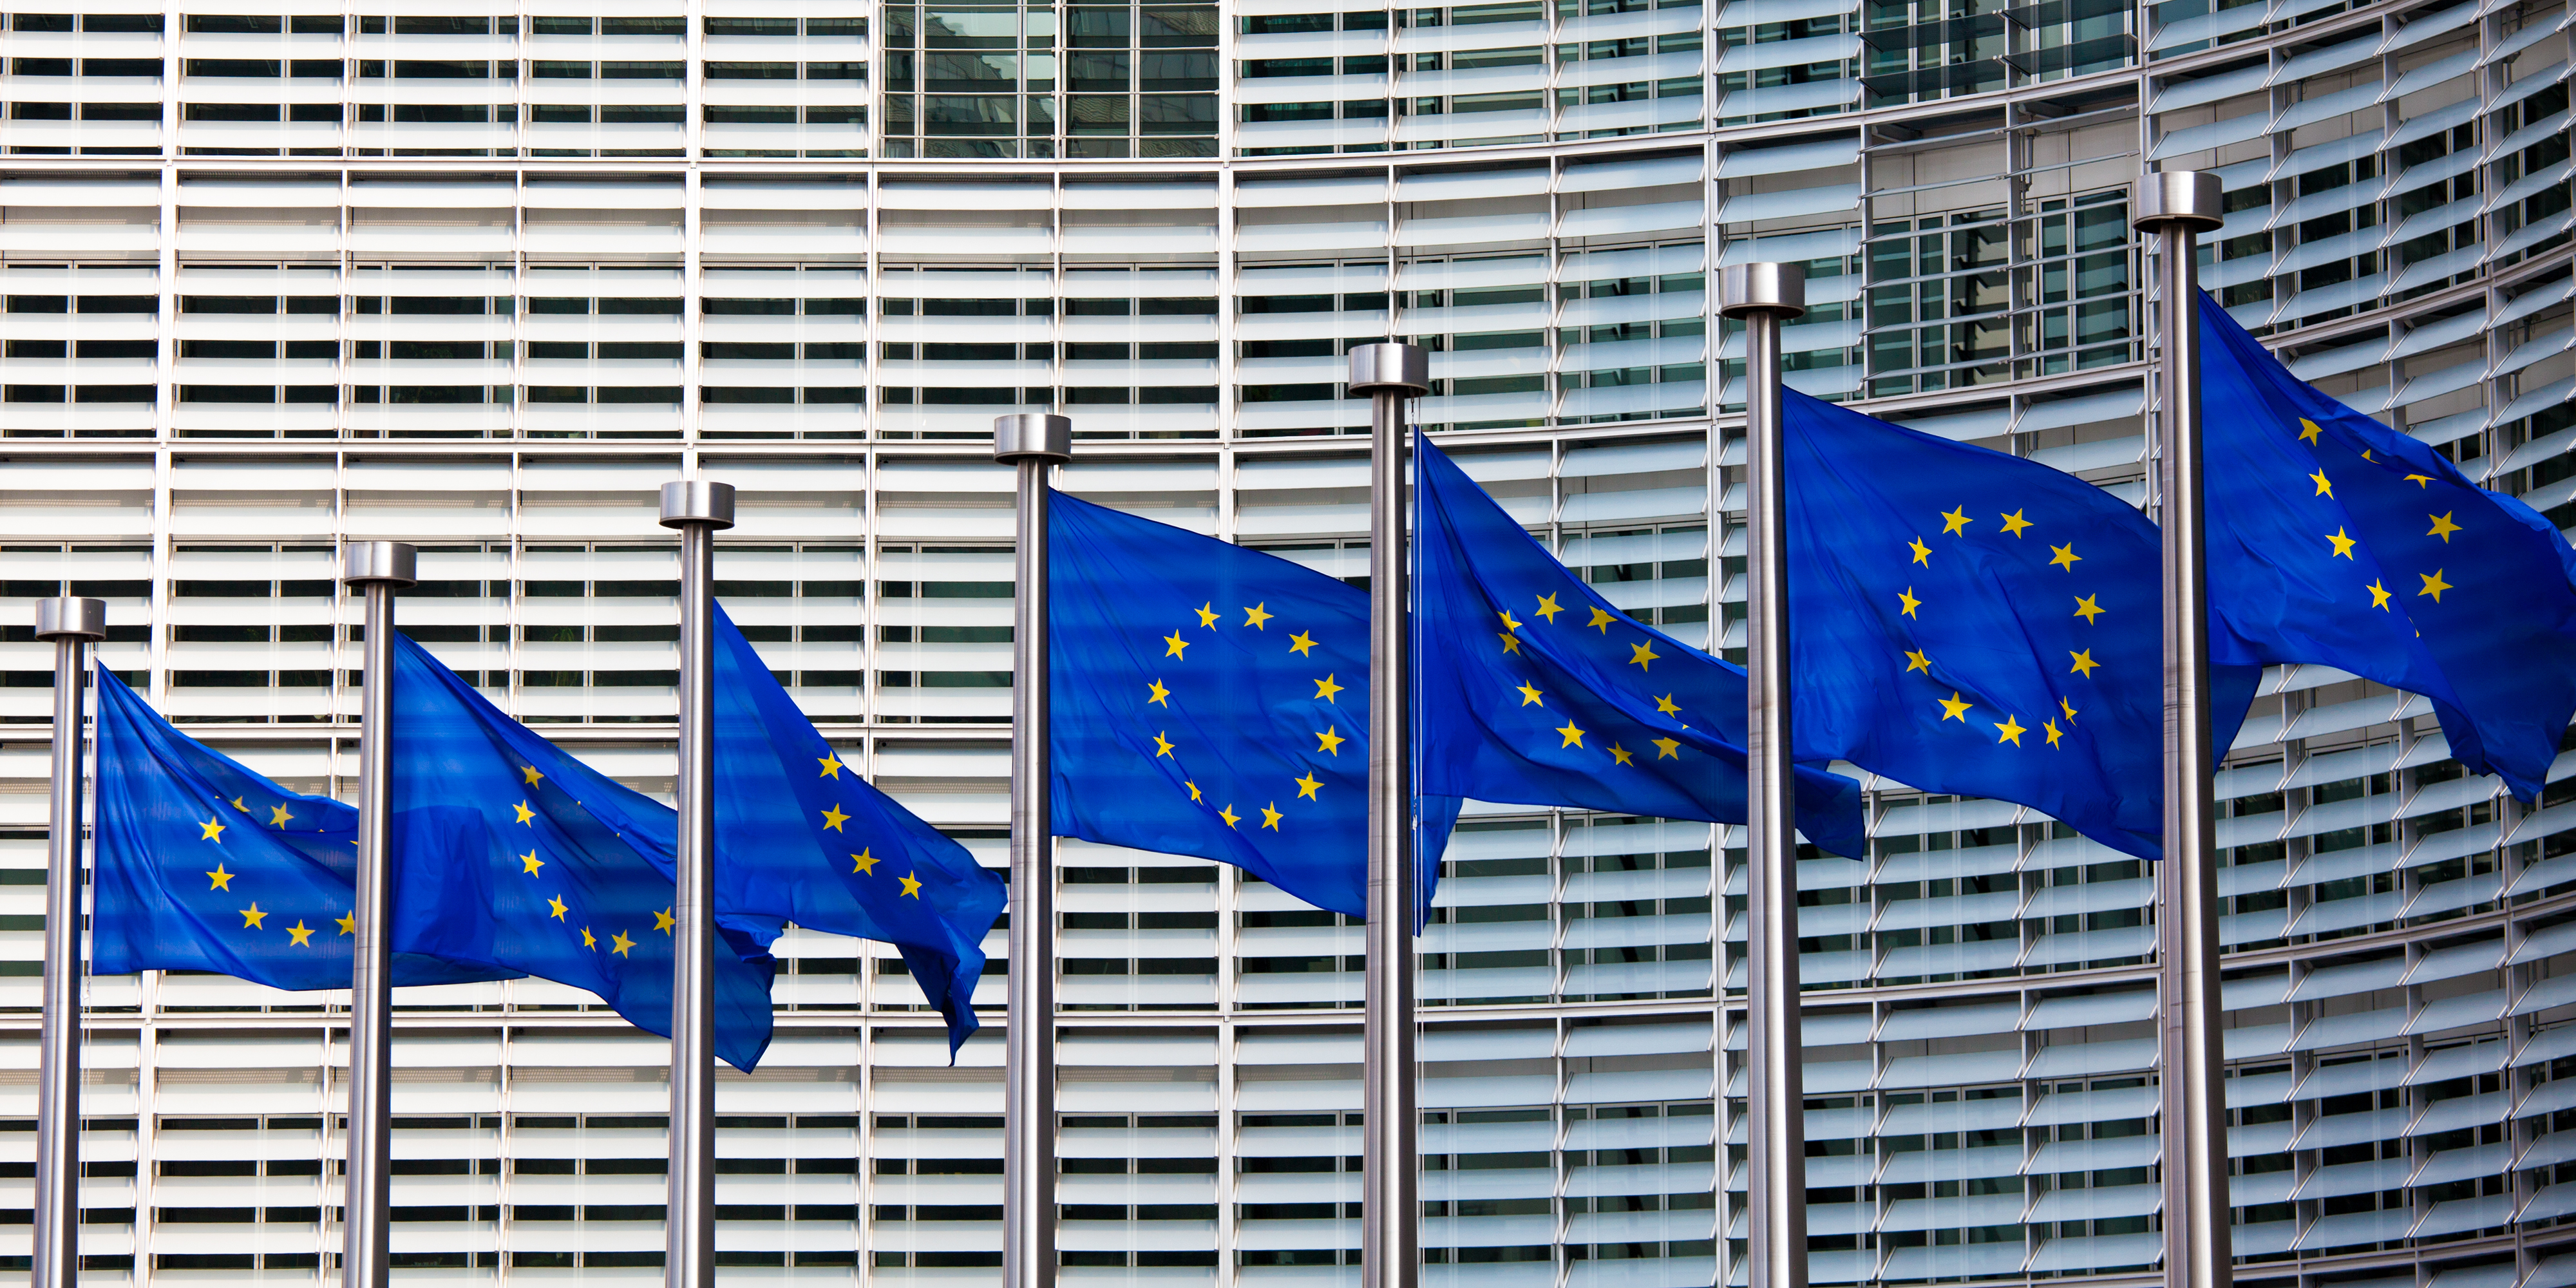 EU Flags flying in front of EU Commission in Brussels